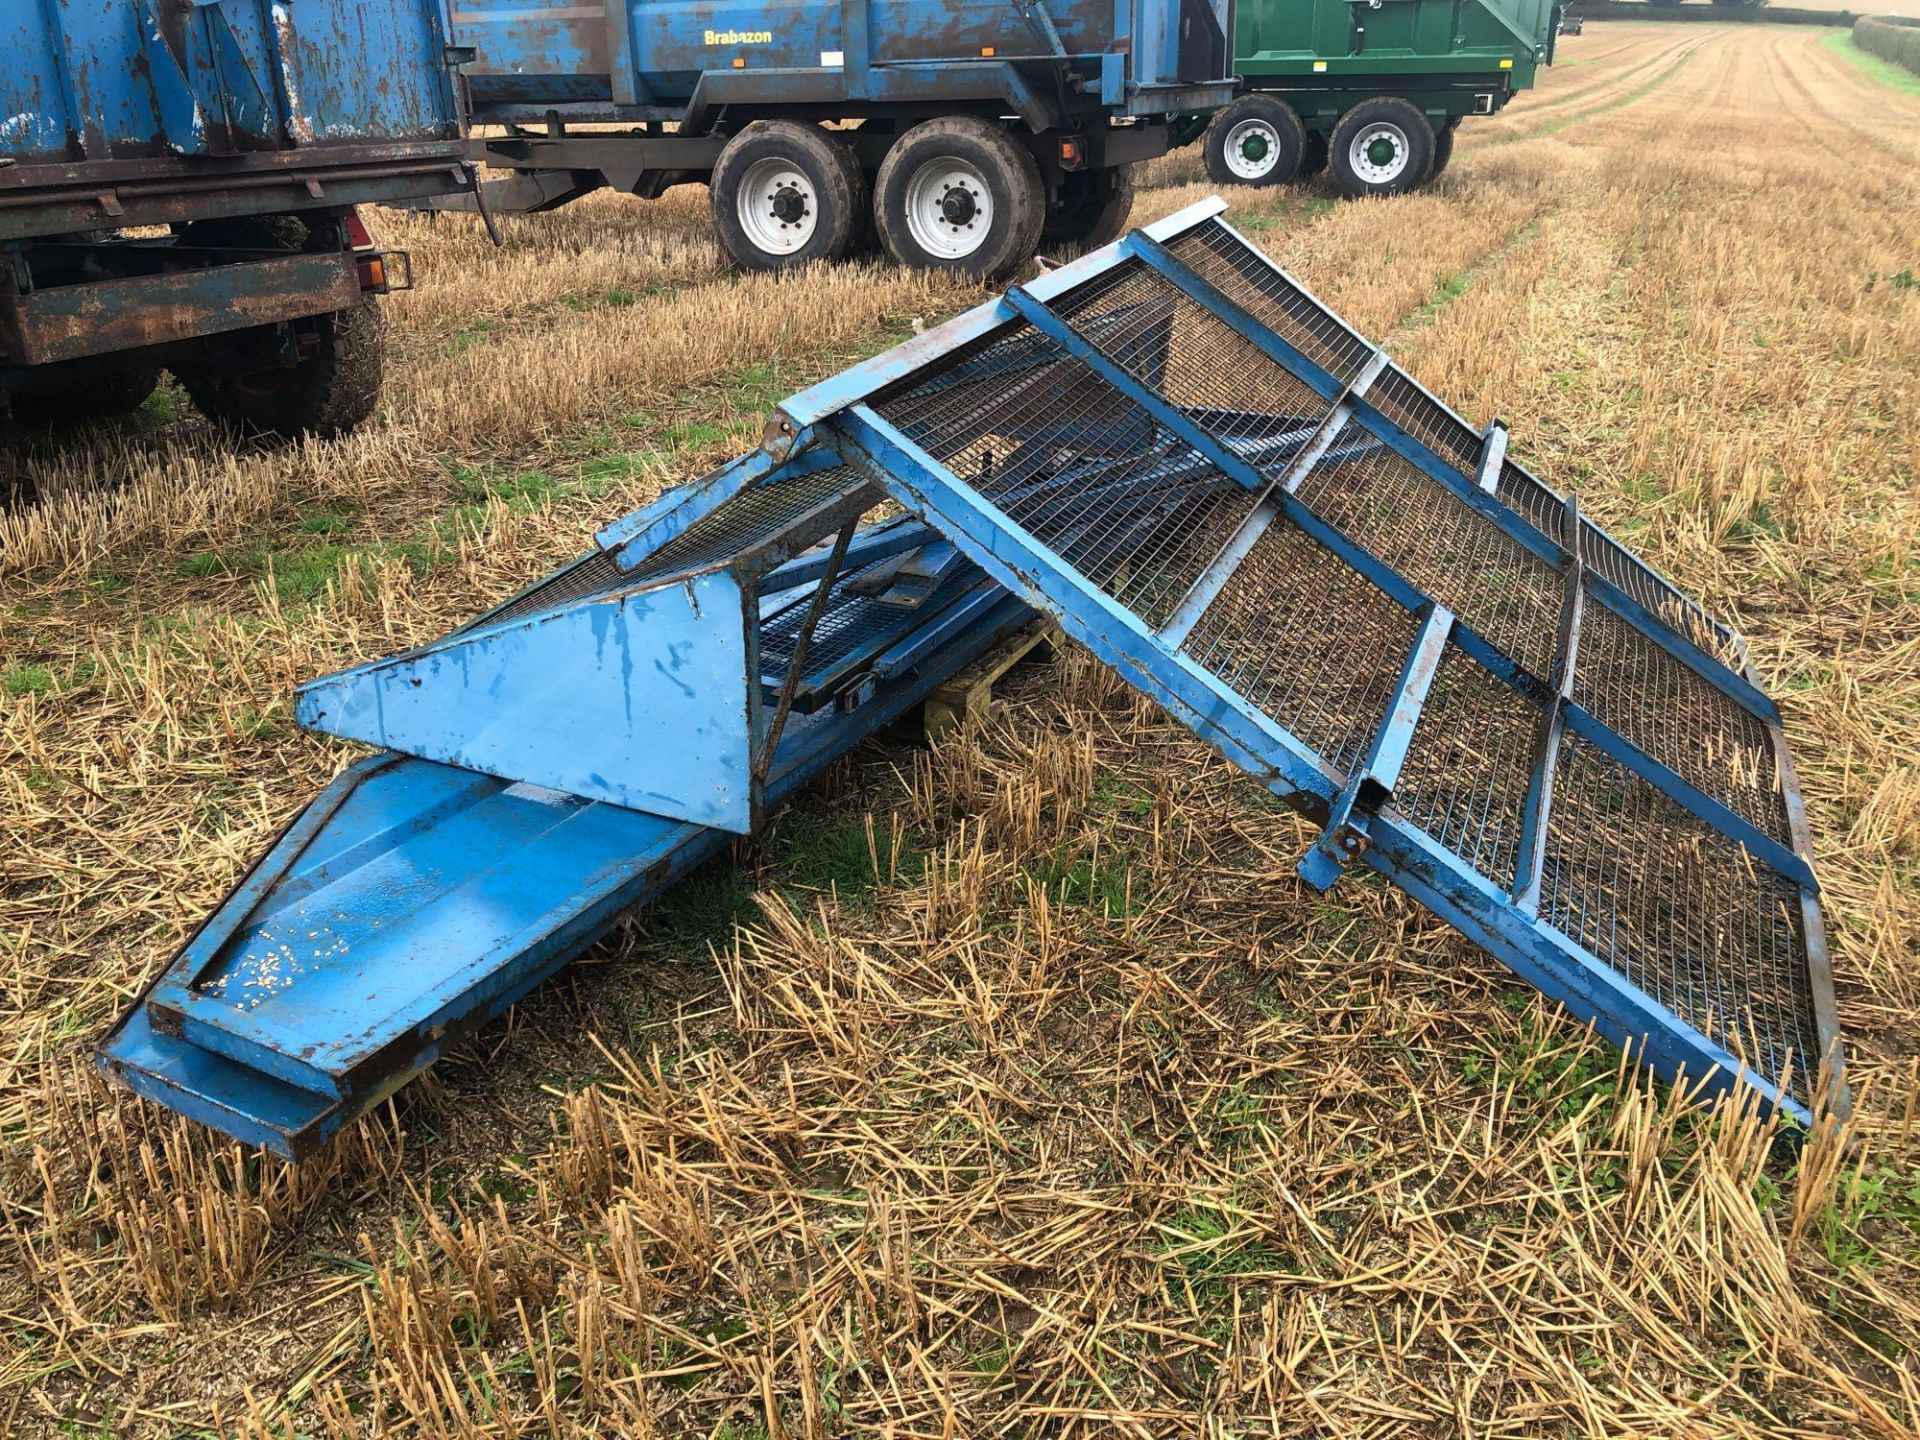 8t twin axle trailer with manual rear door and grain chute. C/w silage sides. On 12.5/80-15.3 wheels - Image 6 of 8